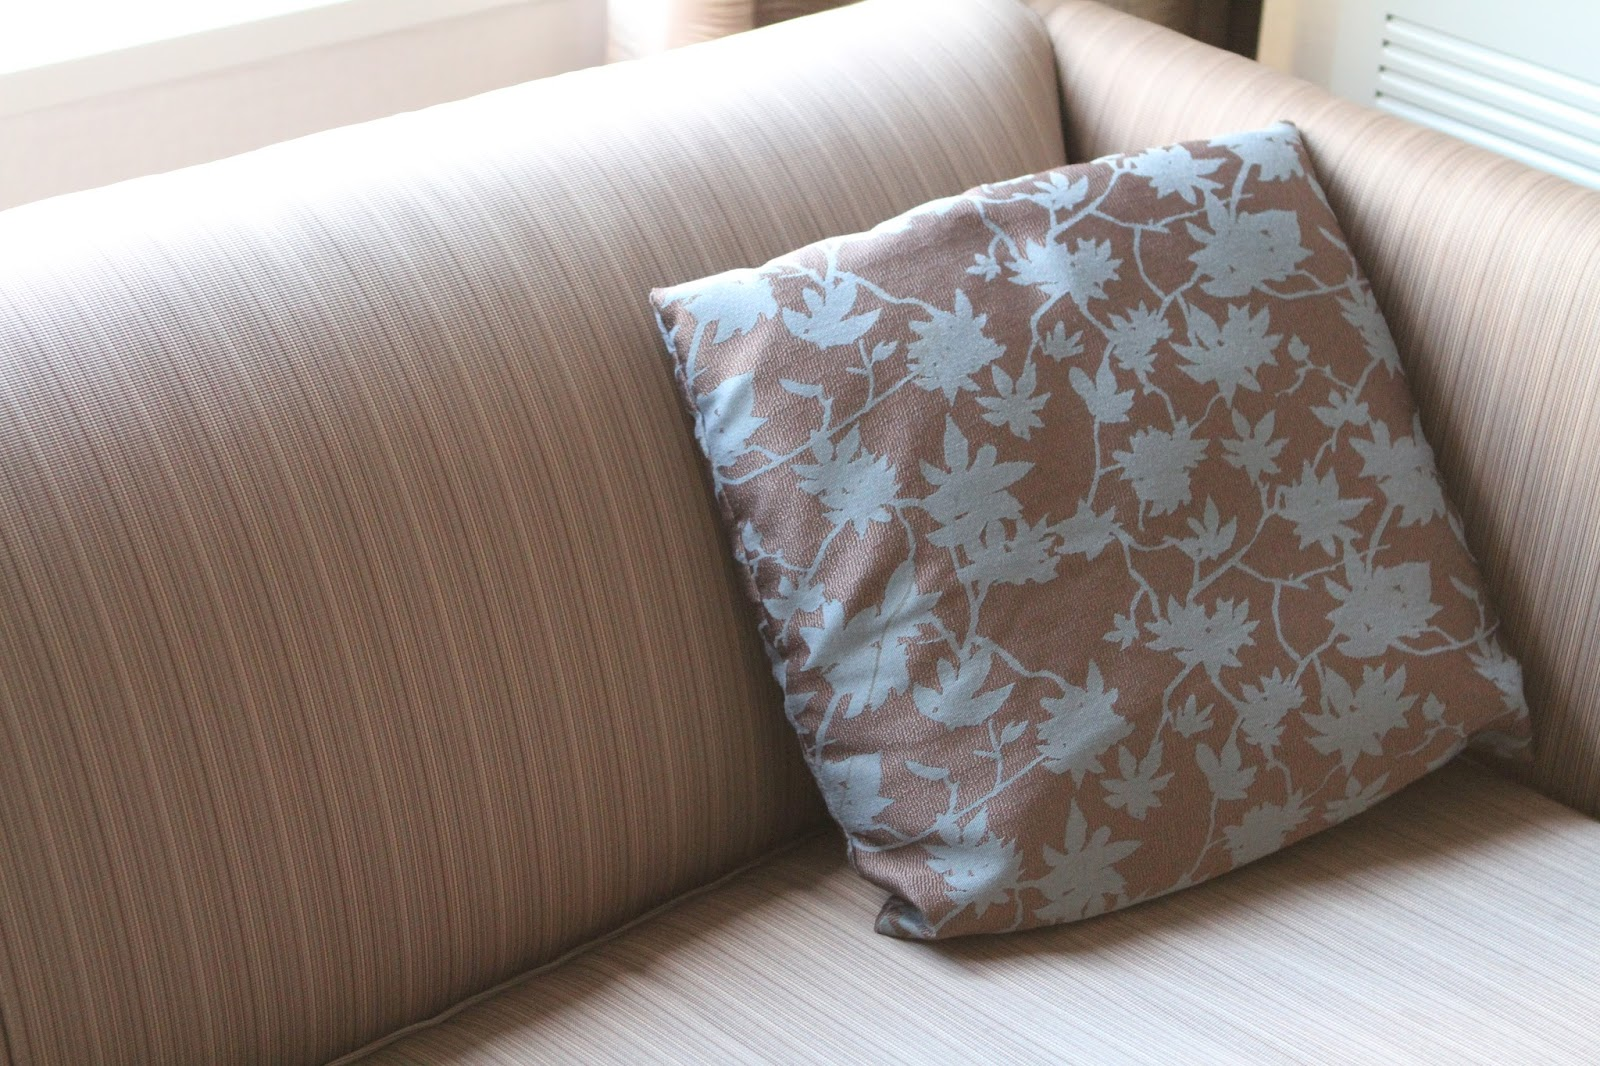 new store boudoir westin inspiration ideas with hotel pillow pillows